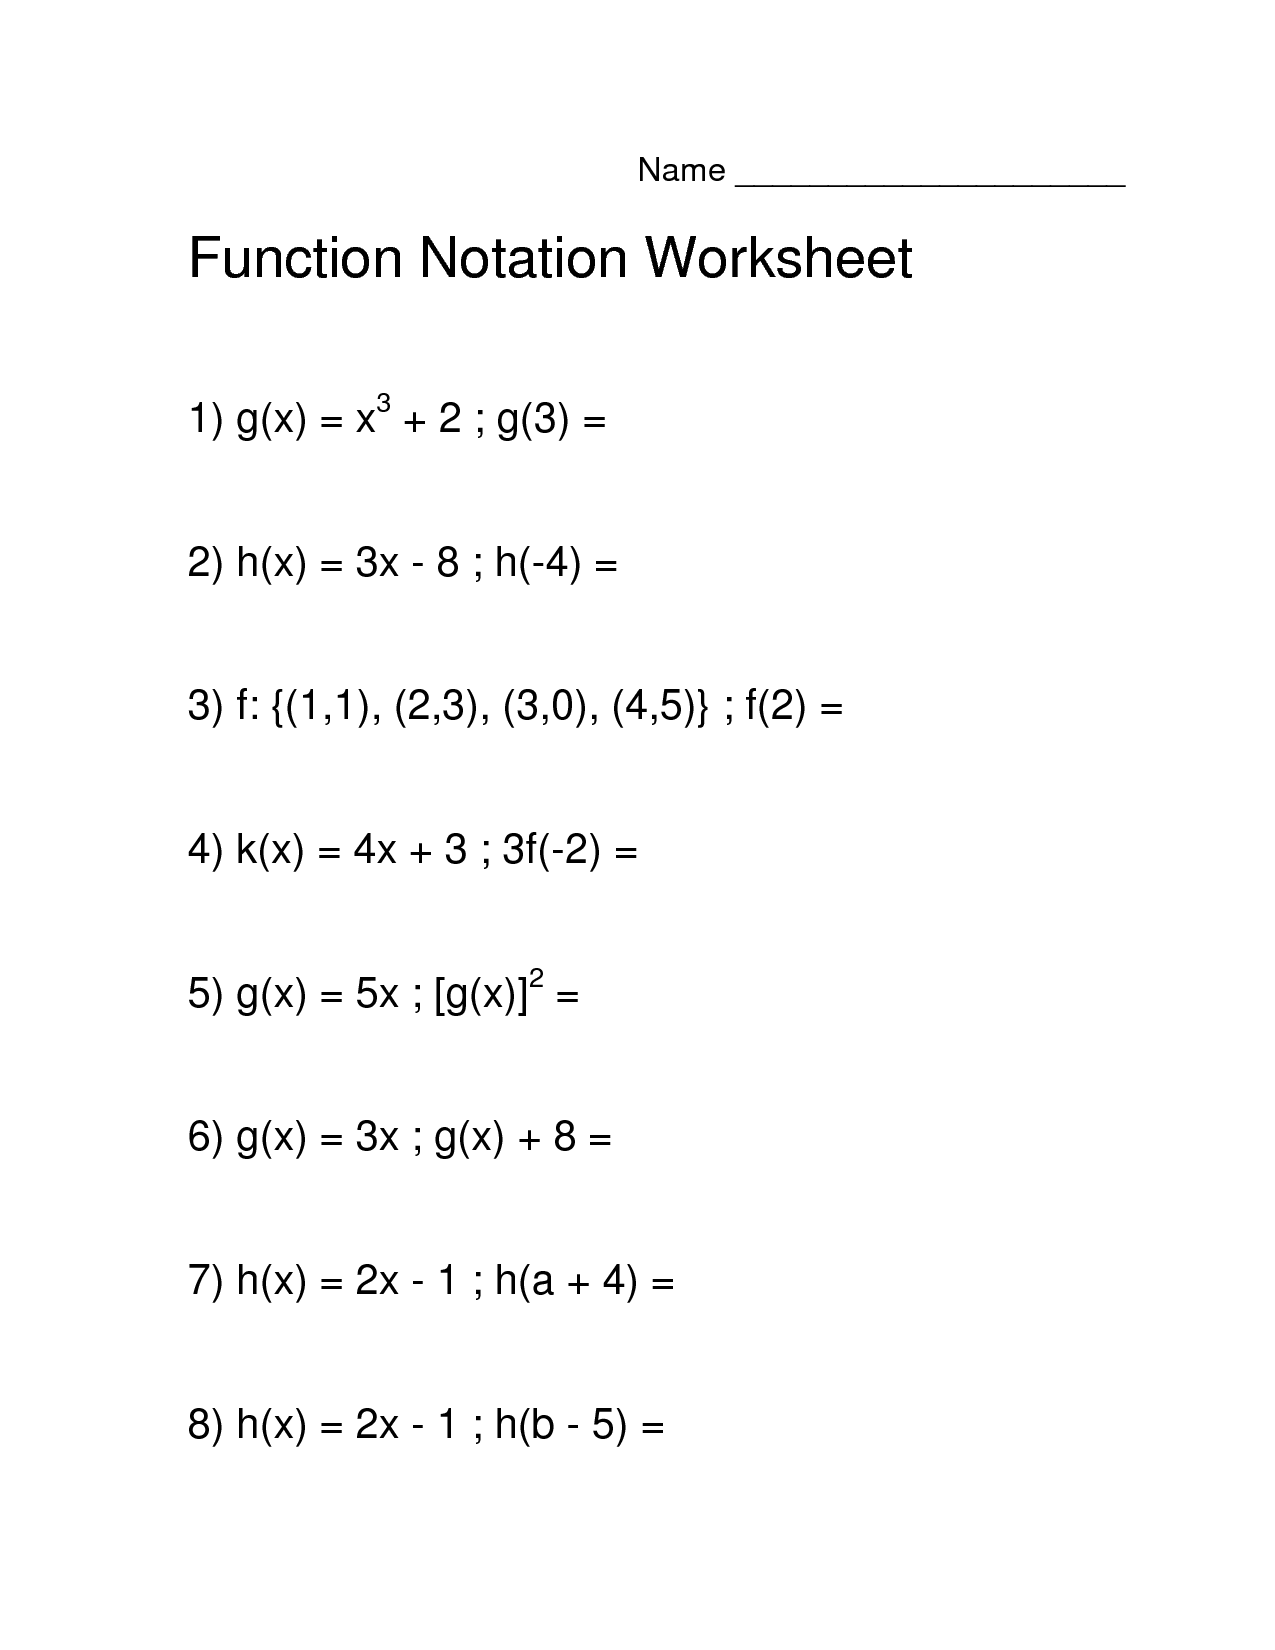 Worksheets Algebra 1 Function Notation Worksheet Answers